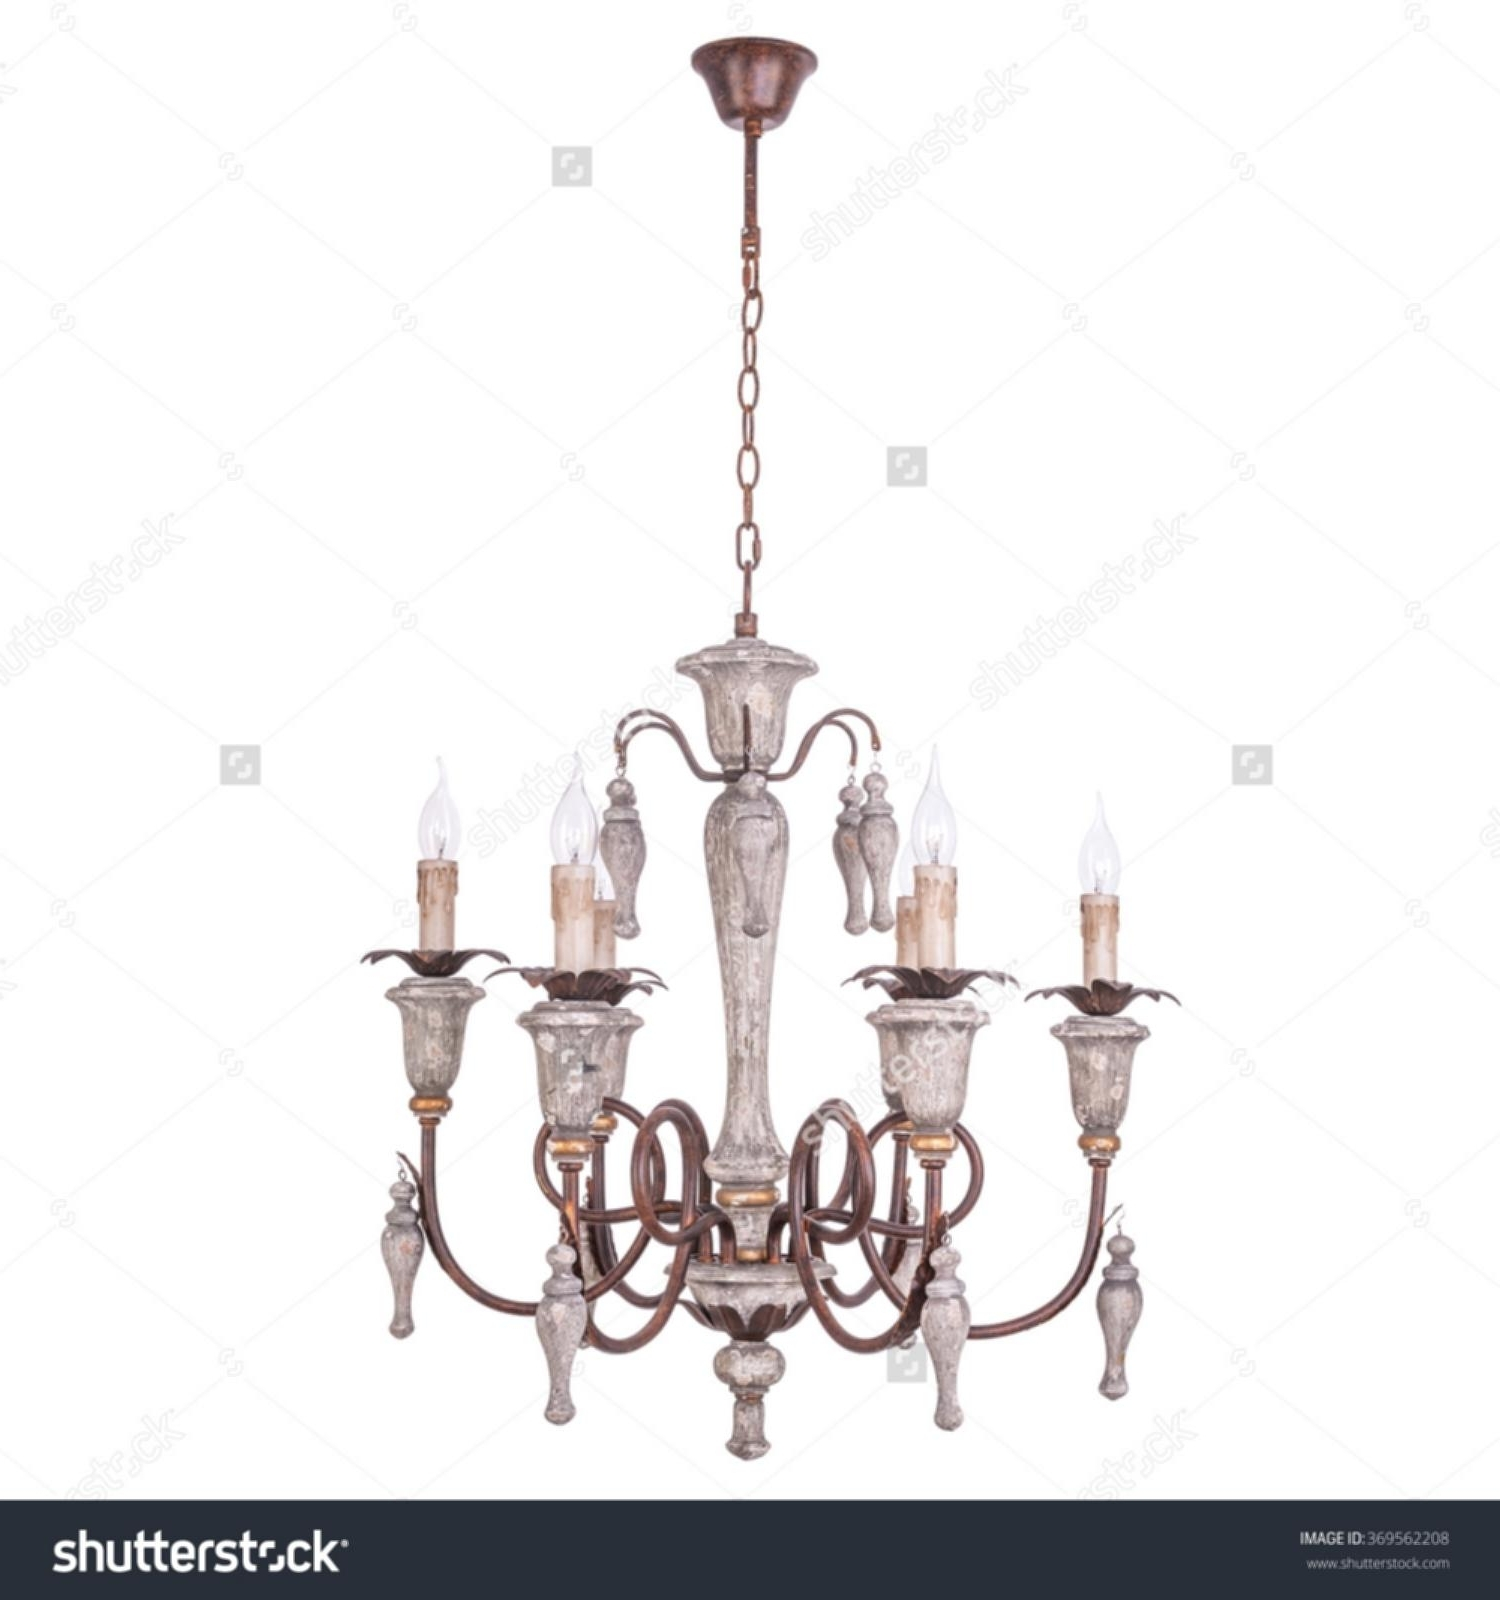 Bryony 9 Light Chandelier Chandelier Vintage Style Isolated On White Within Current Vintage Style Chandelier (View 11 of 15)